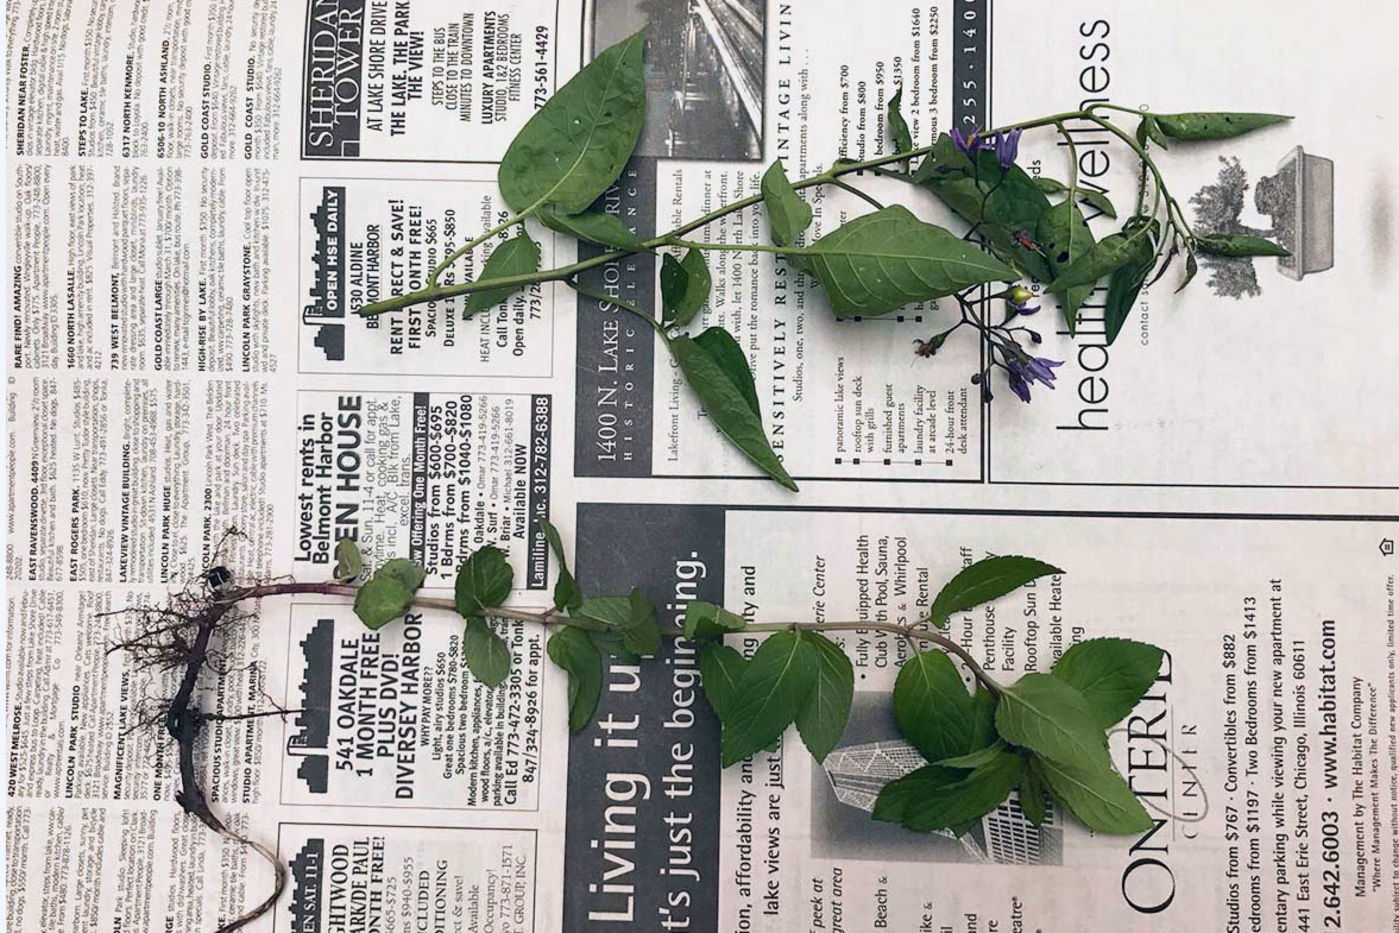 Two plant stems with leaves lying on a piece of newspaper.